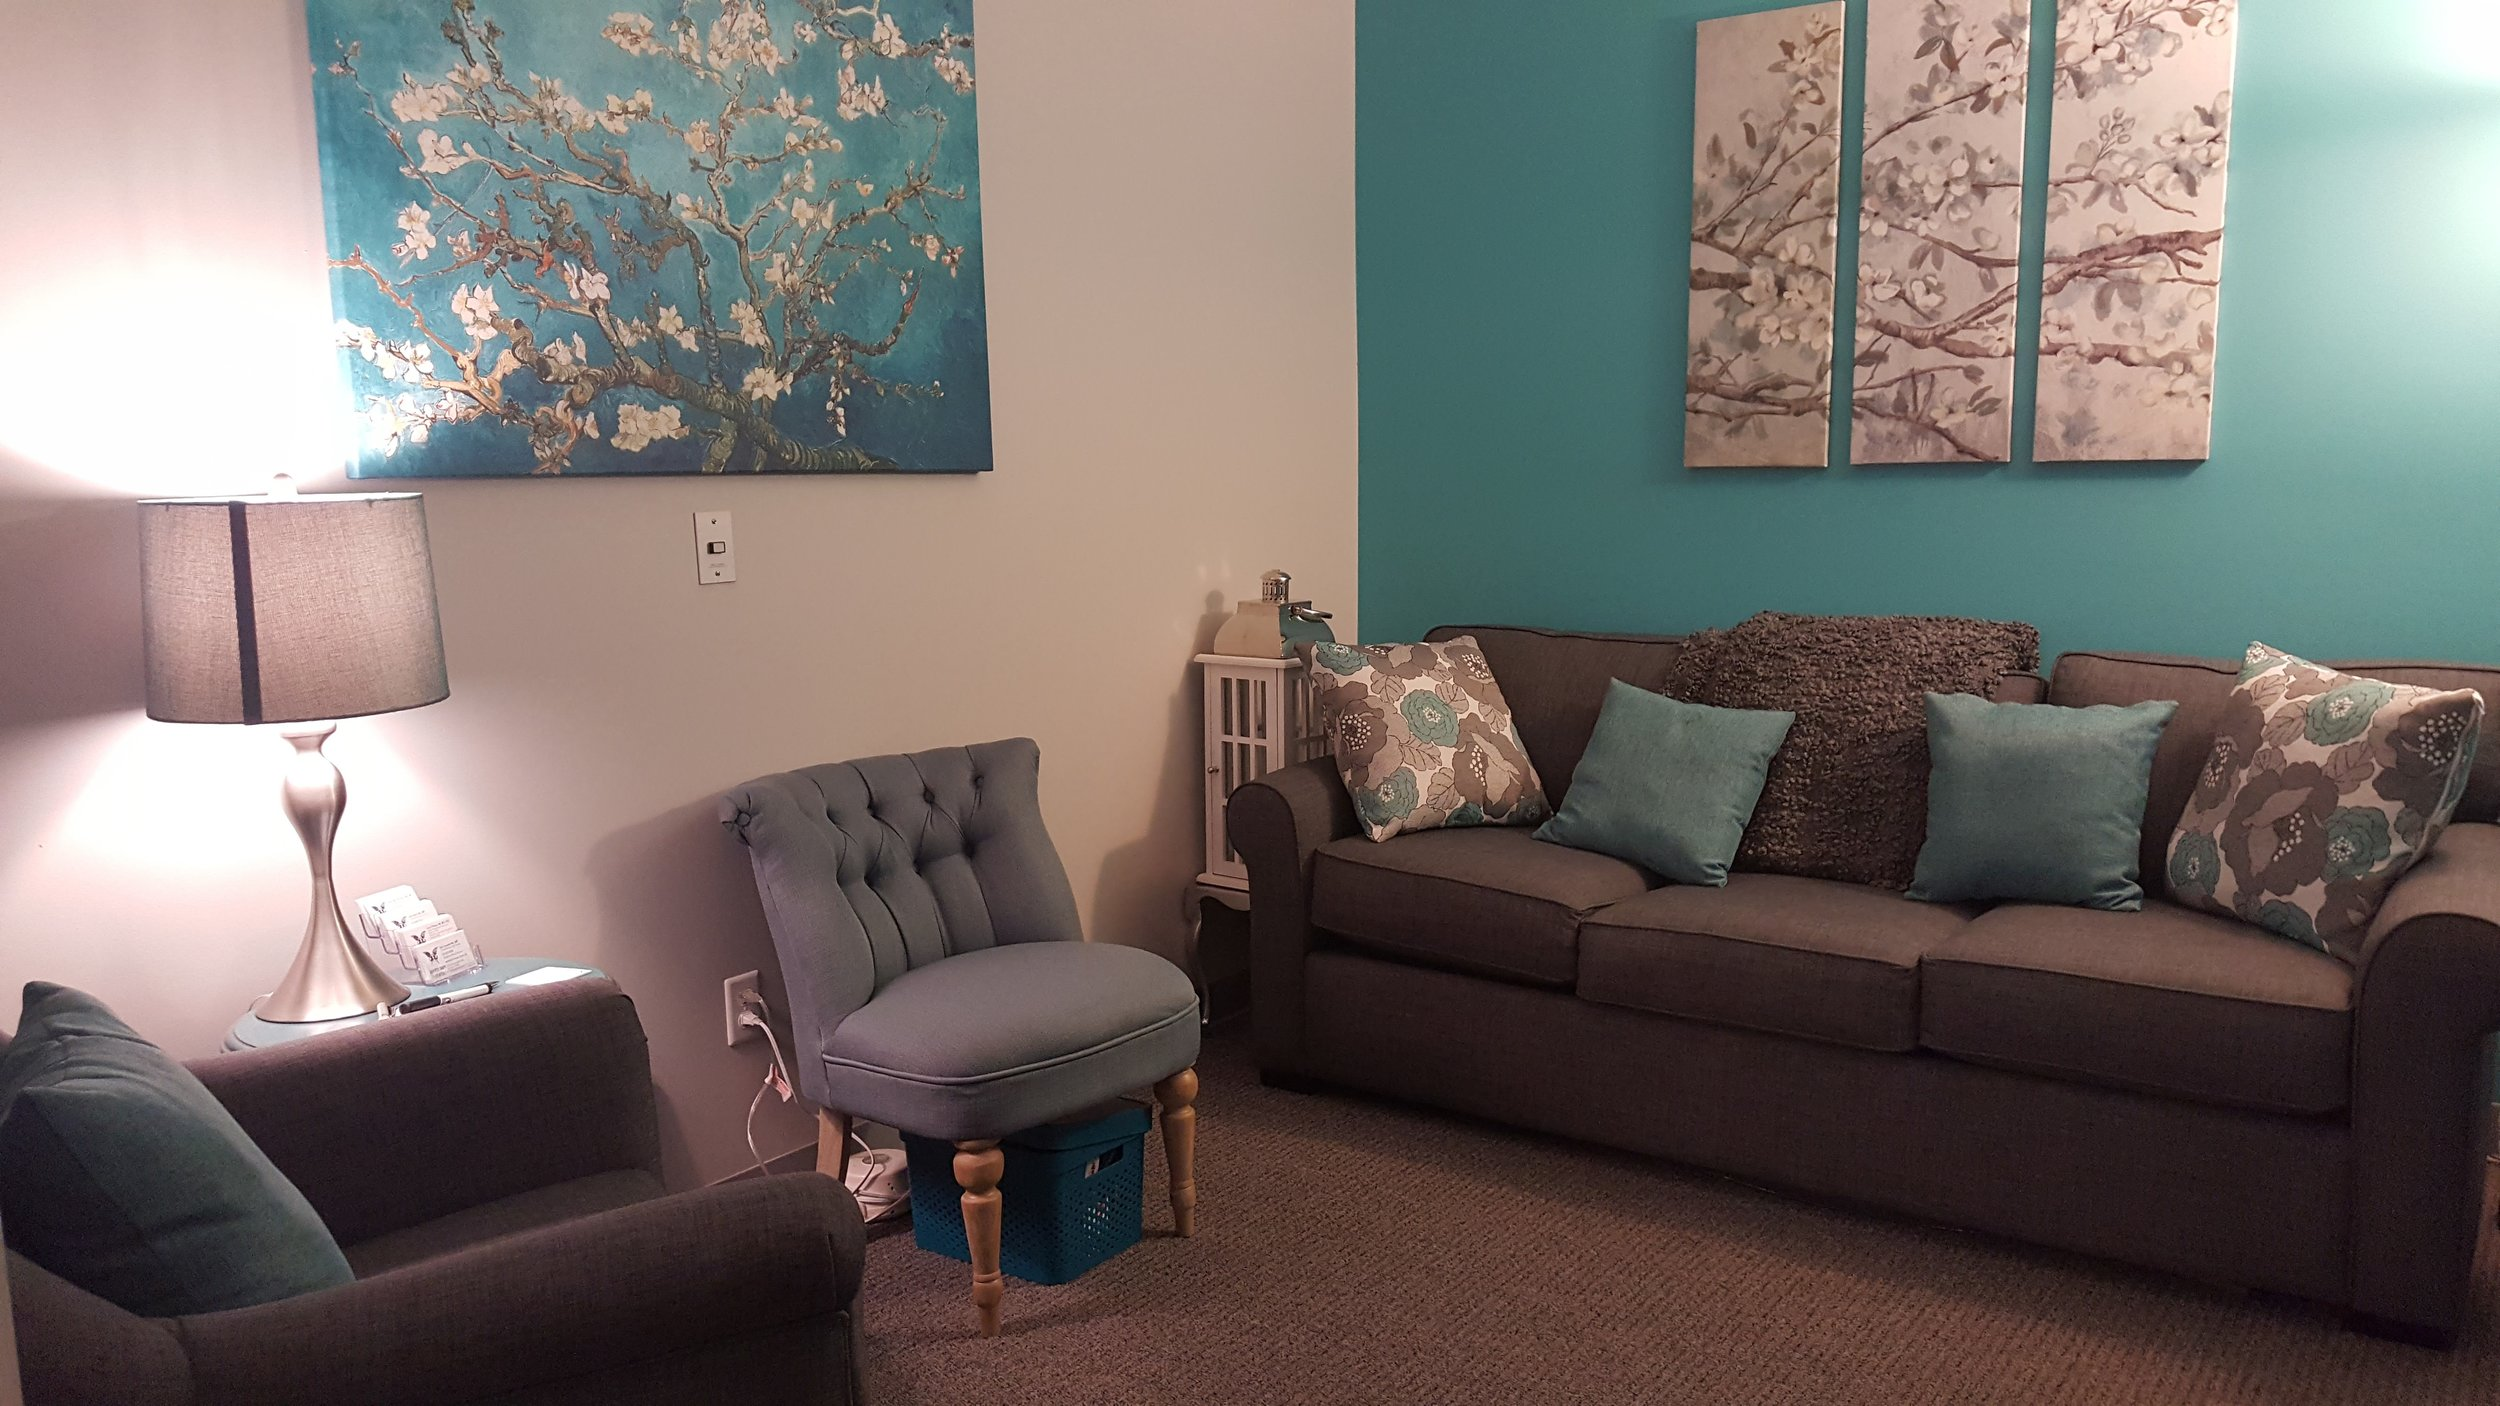 Copy of Medium Therapy Room at Hope Therapy Center in Burbank